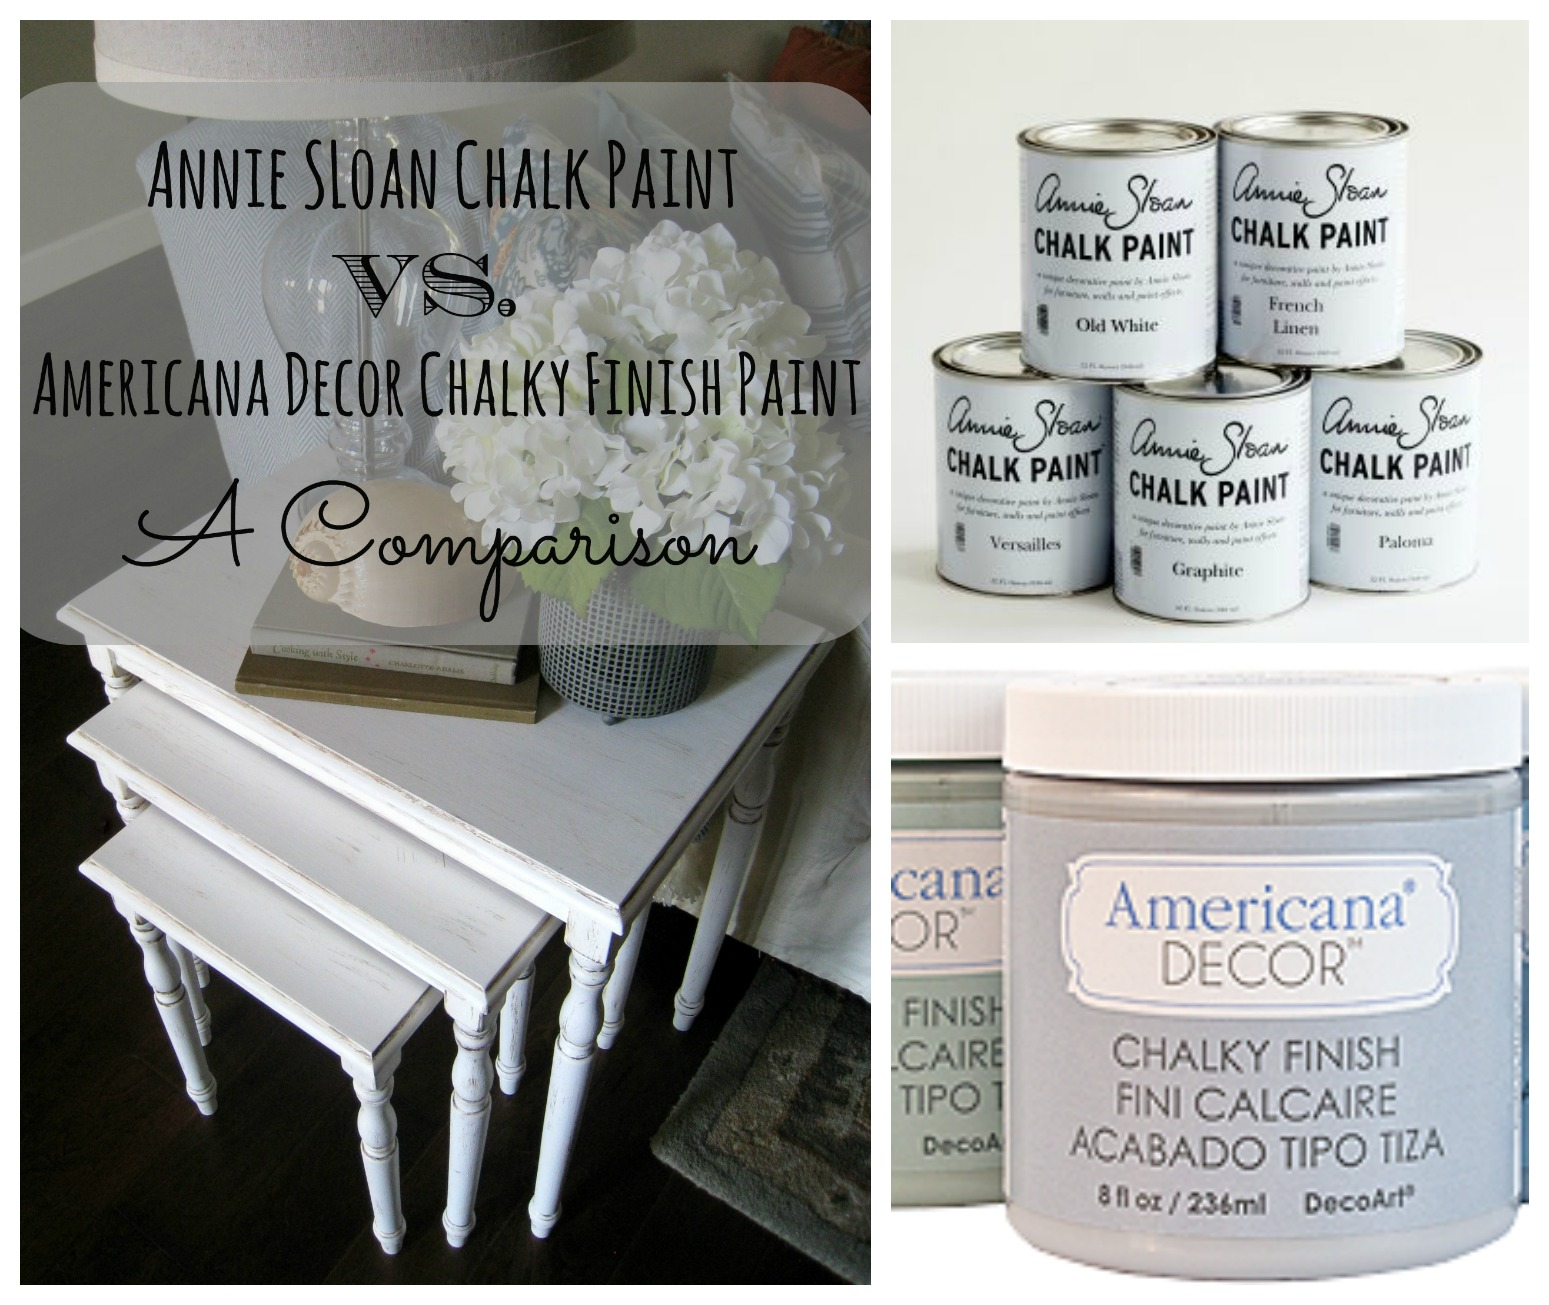 Annie Sloan Chalk Paint Vs. Americana Decor Chalky Paint